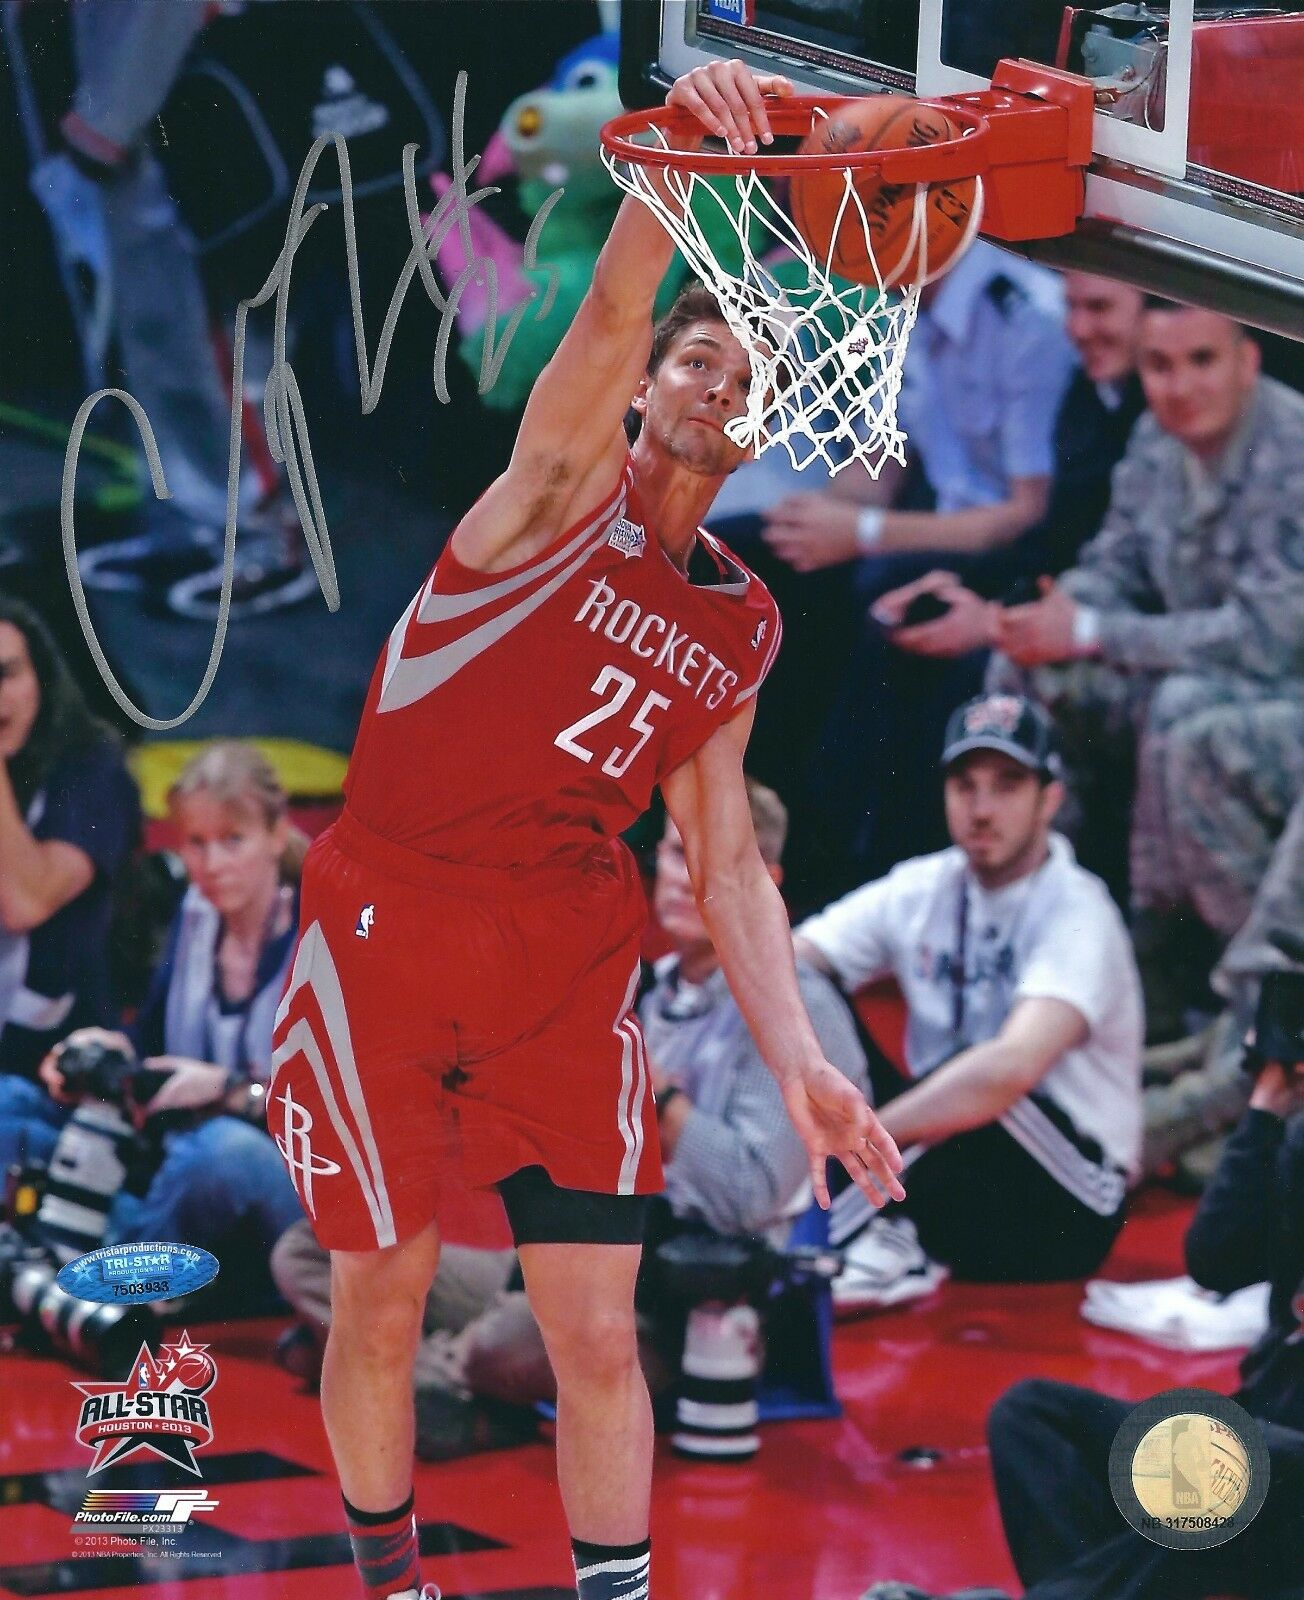 Chandler Parsons Signed Houston Rockets Basketball 8x10 Photo Tri-Star 7503933